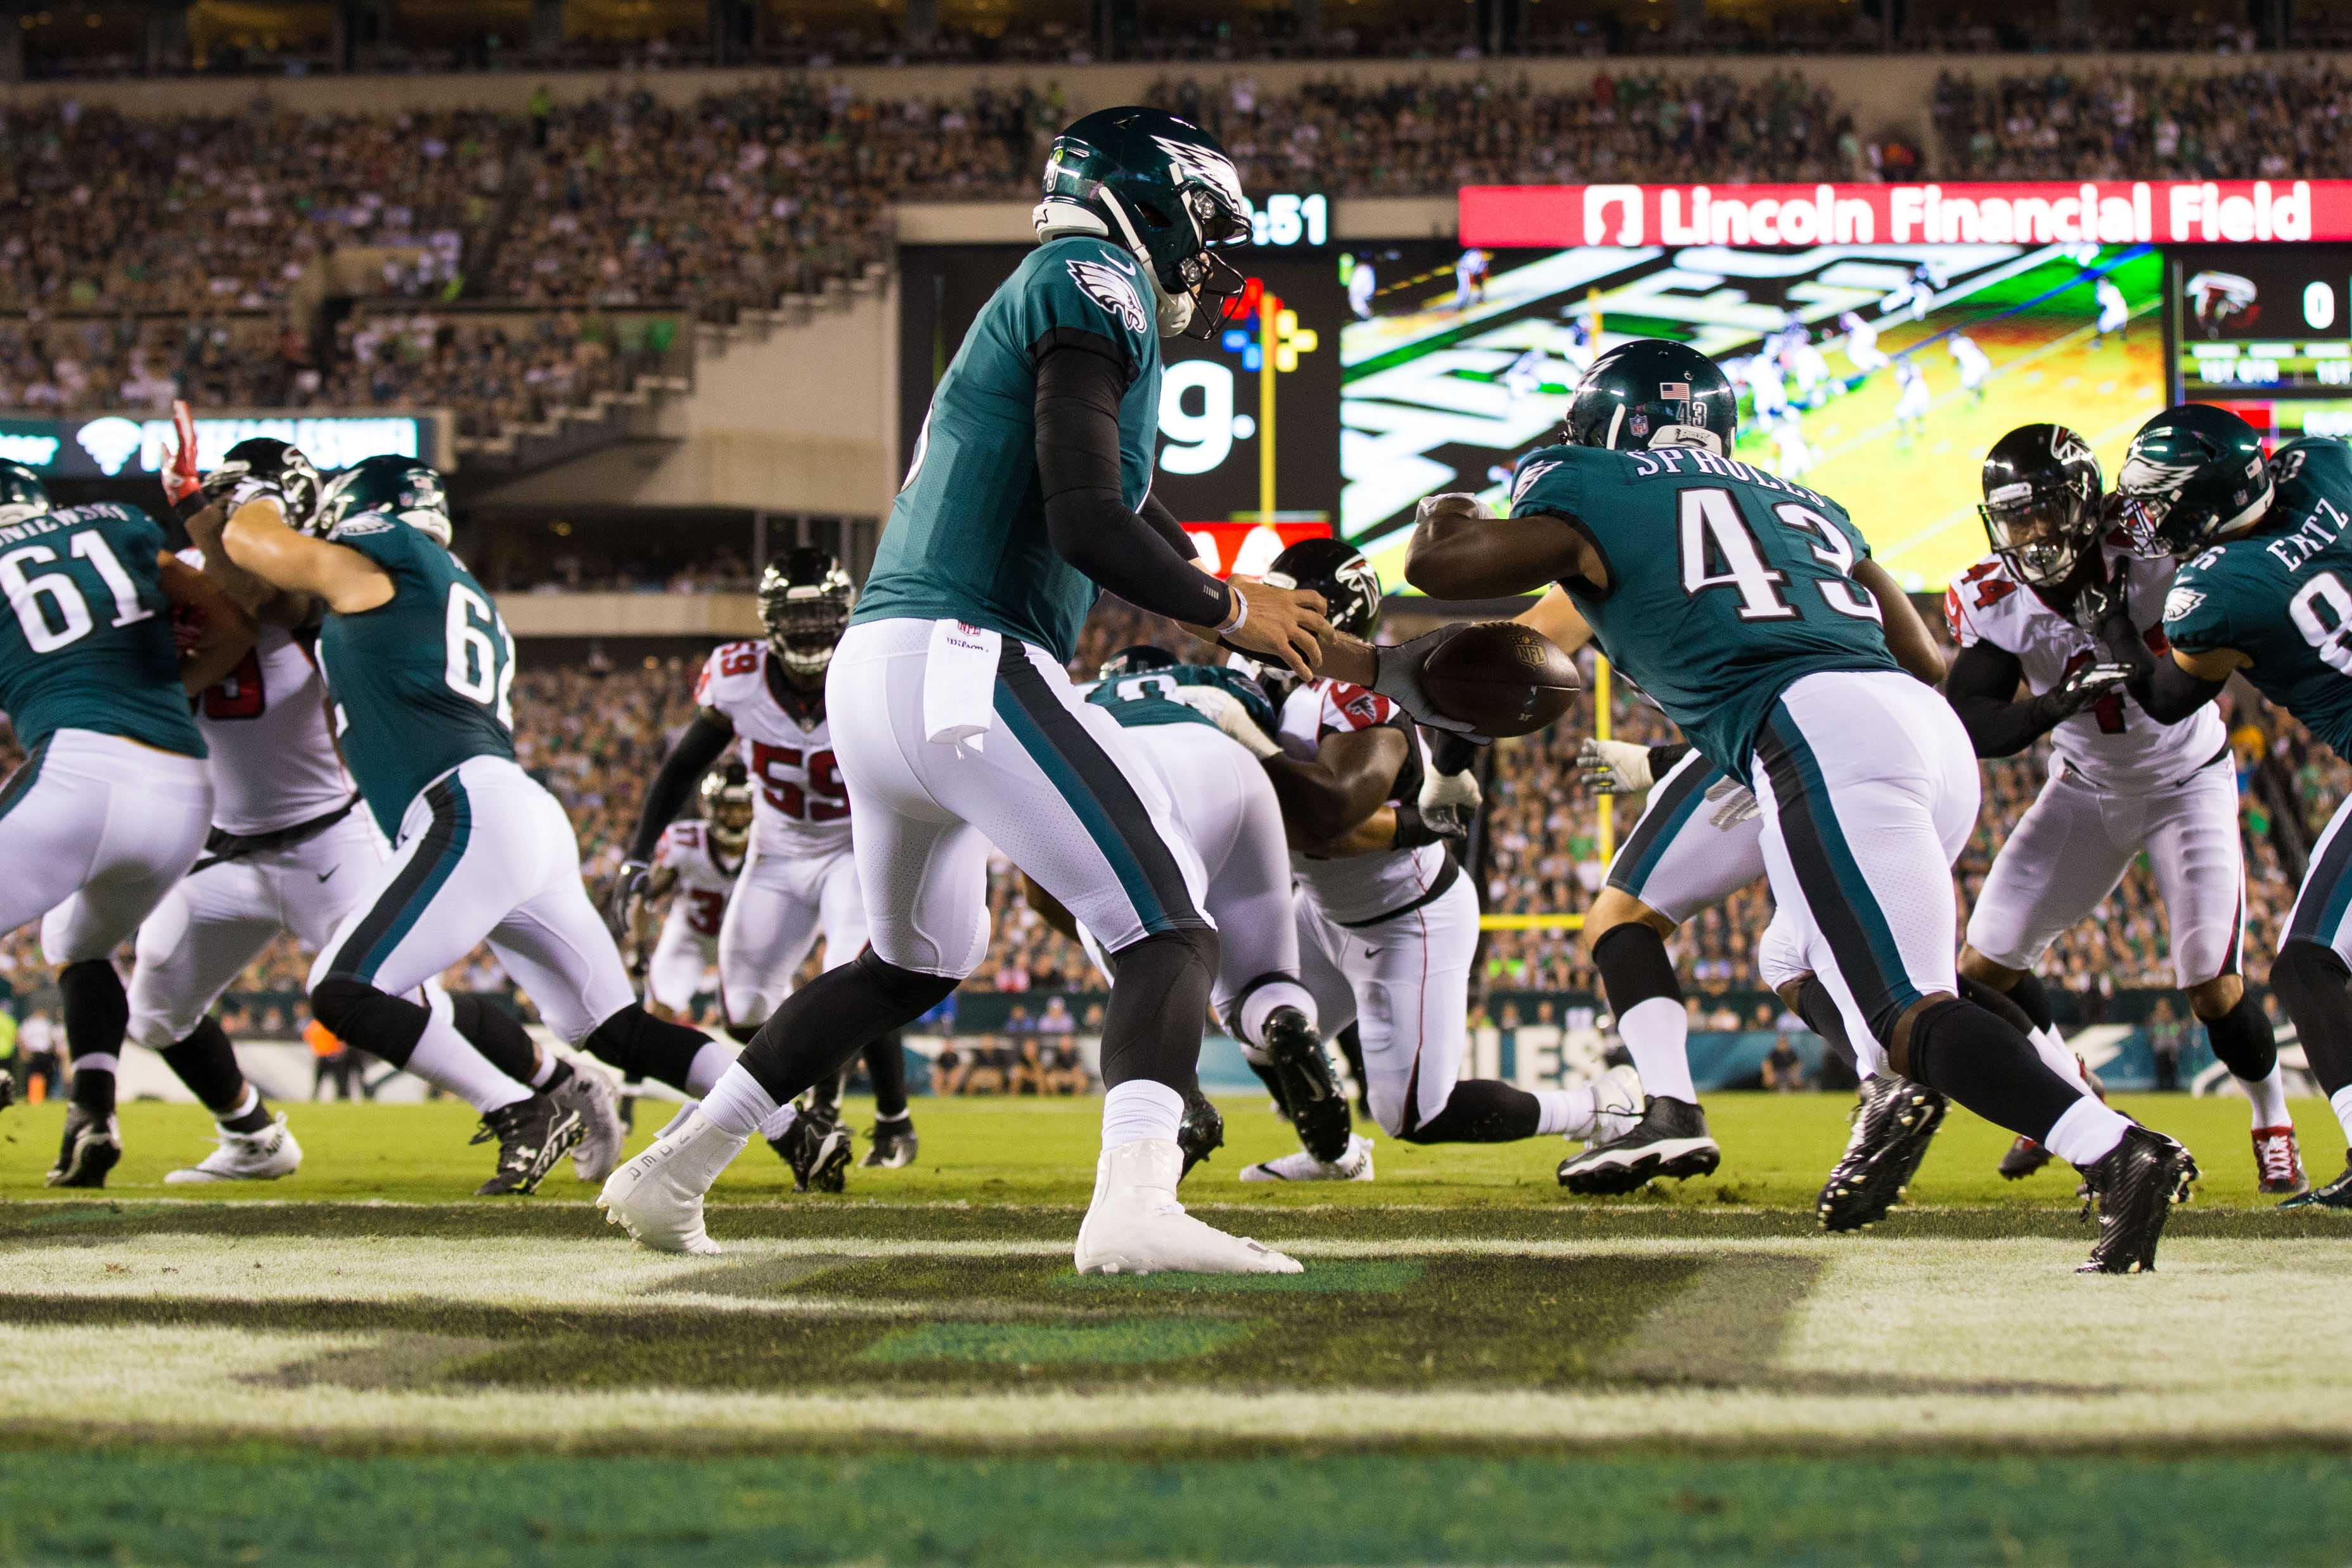 Philadelphia Eagles quarterback Nick Foles hands off to running back Darren Sproles during the first quarter against the Atlanta Falcons at Lincoln Financial Field. - Packers QB Carted Off In Clash With Bears